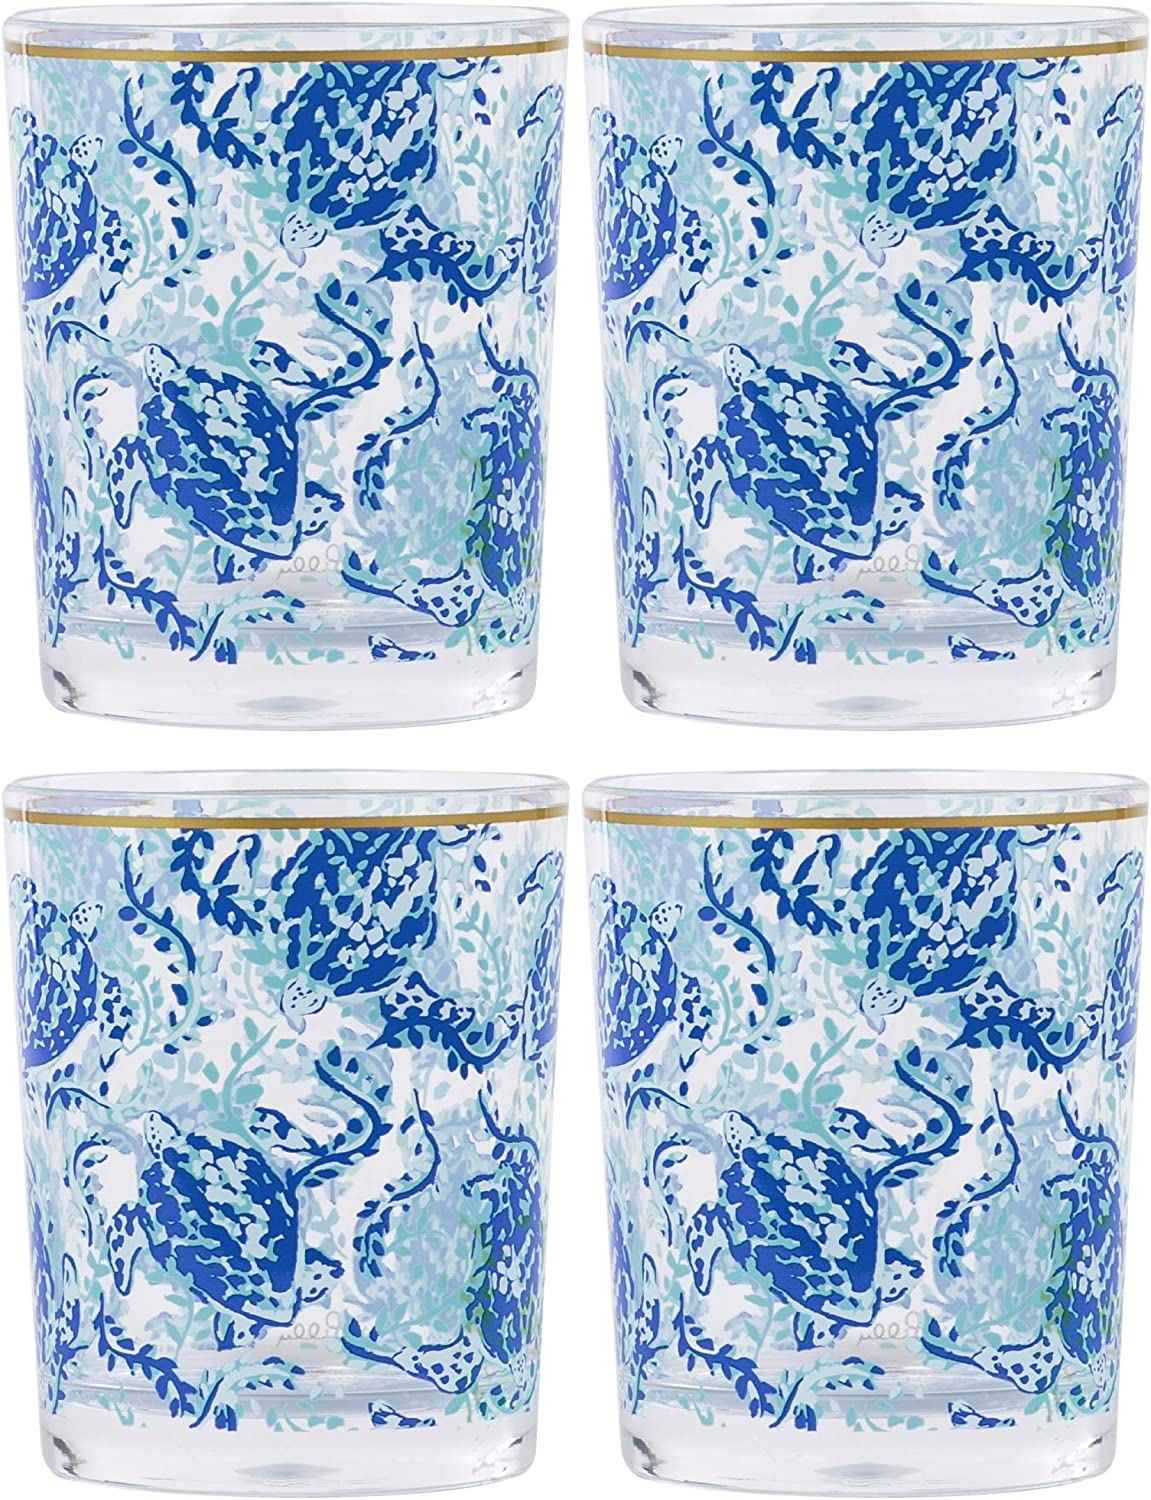 Lilly Pulitzer Blue Acrylic Plastic Lo Ball Wine or Cocktail Glass Set of 4, Turtley Awesome